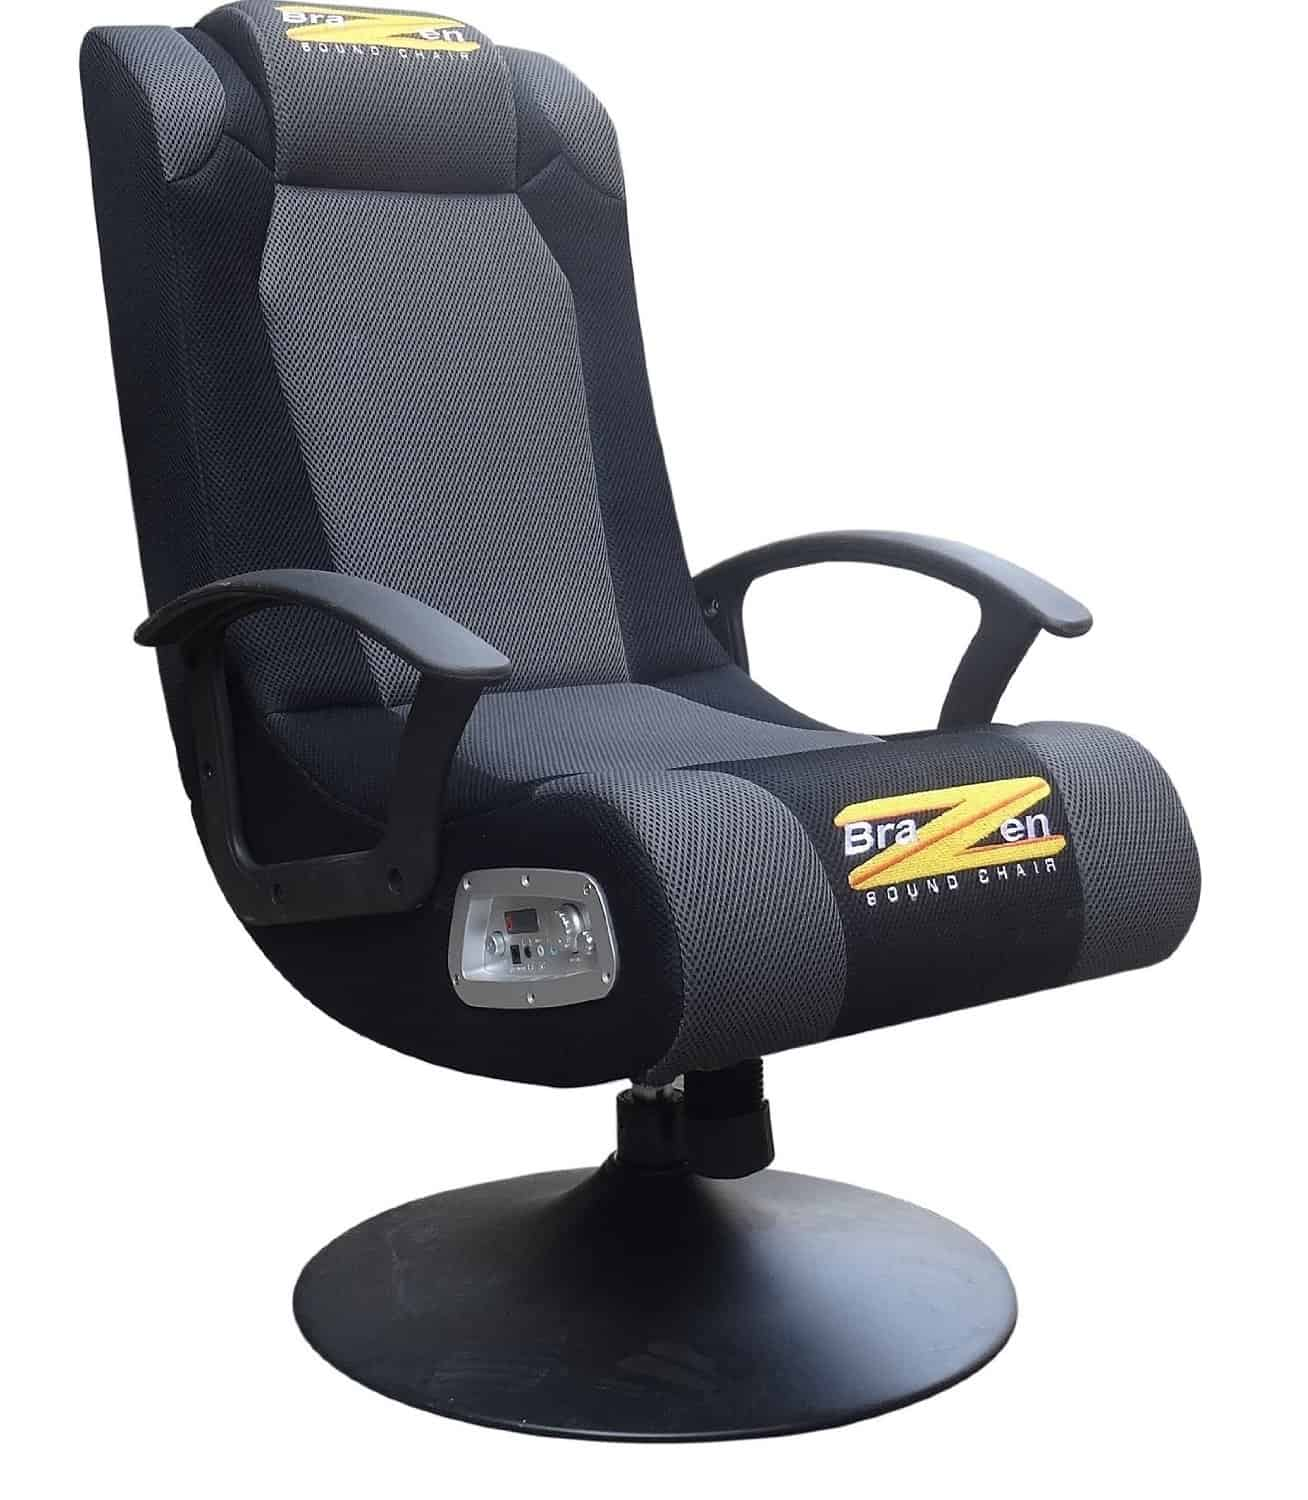 BraZen Stag 2 1 Surround Sound Gaming Chair Review